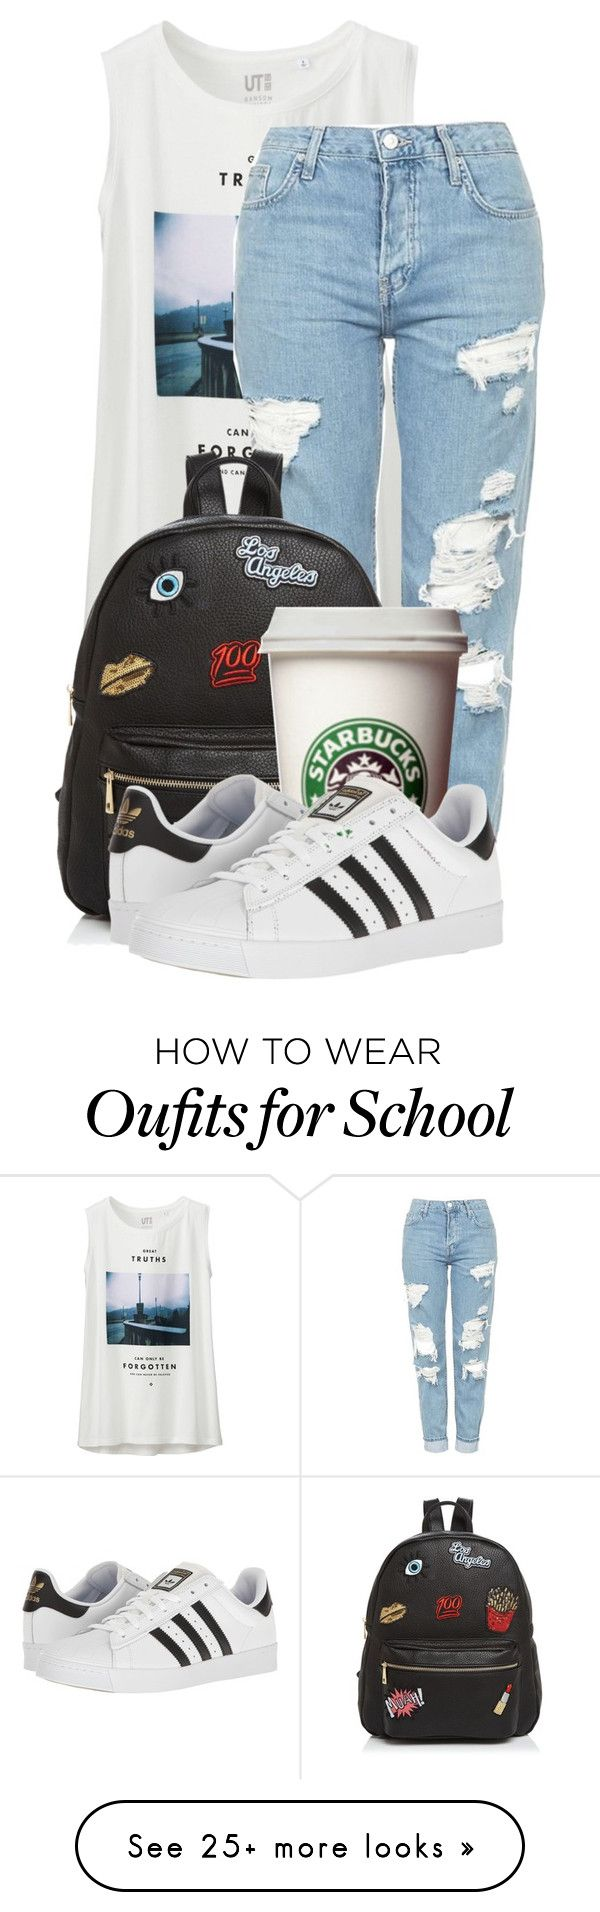 """Casual summer chic"" by kellyaguilera on Polyvore featuring Uniqlo, Topshop, Ollie & B, adidas and summertime"